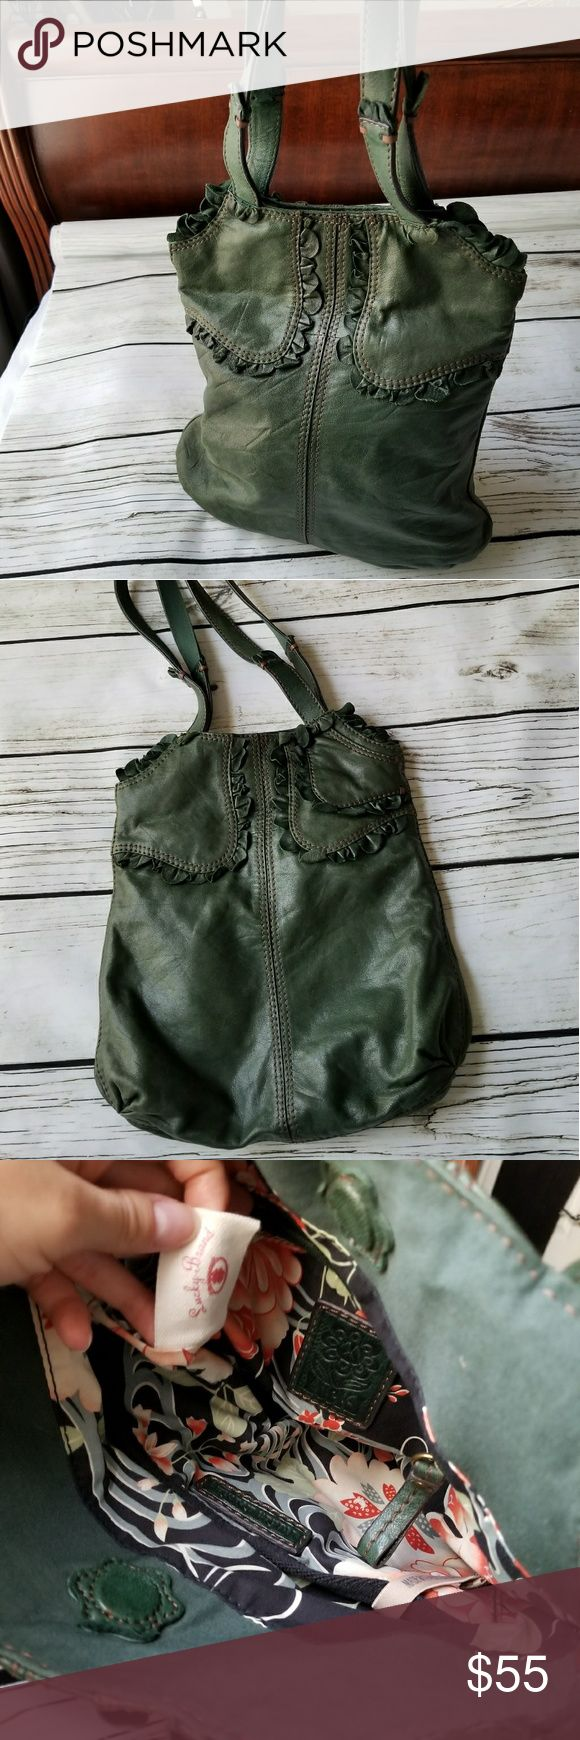 """New Lucky Brand green gen leather shoulder bag New condition  Lucky brand  Italian genuine lamb leather  2 straps  12"""" long 15"""" tall 3"""" deep  Super soft  Big enough to fit tablet big book or even a small laptop Lucky Brand Bags Shoulder Bags"""